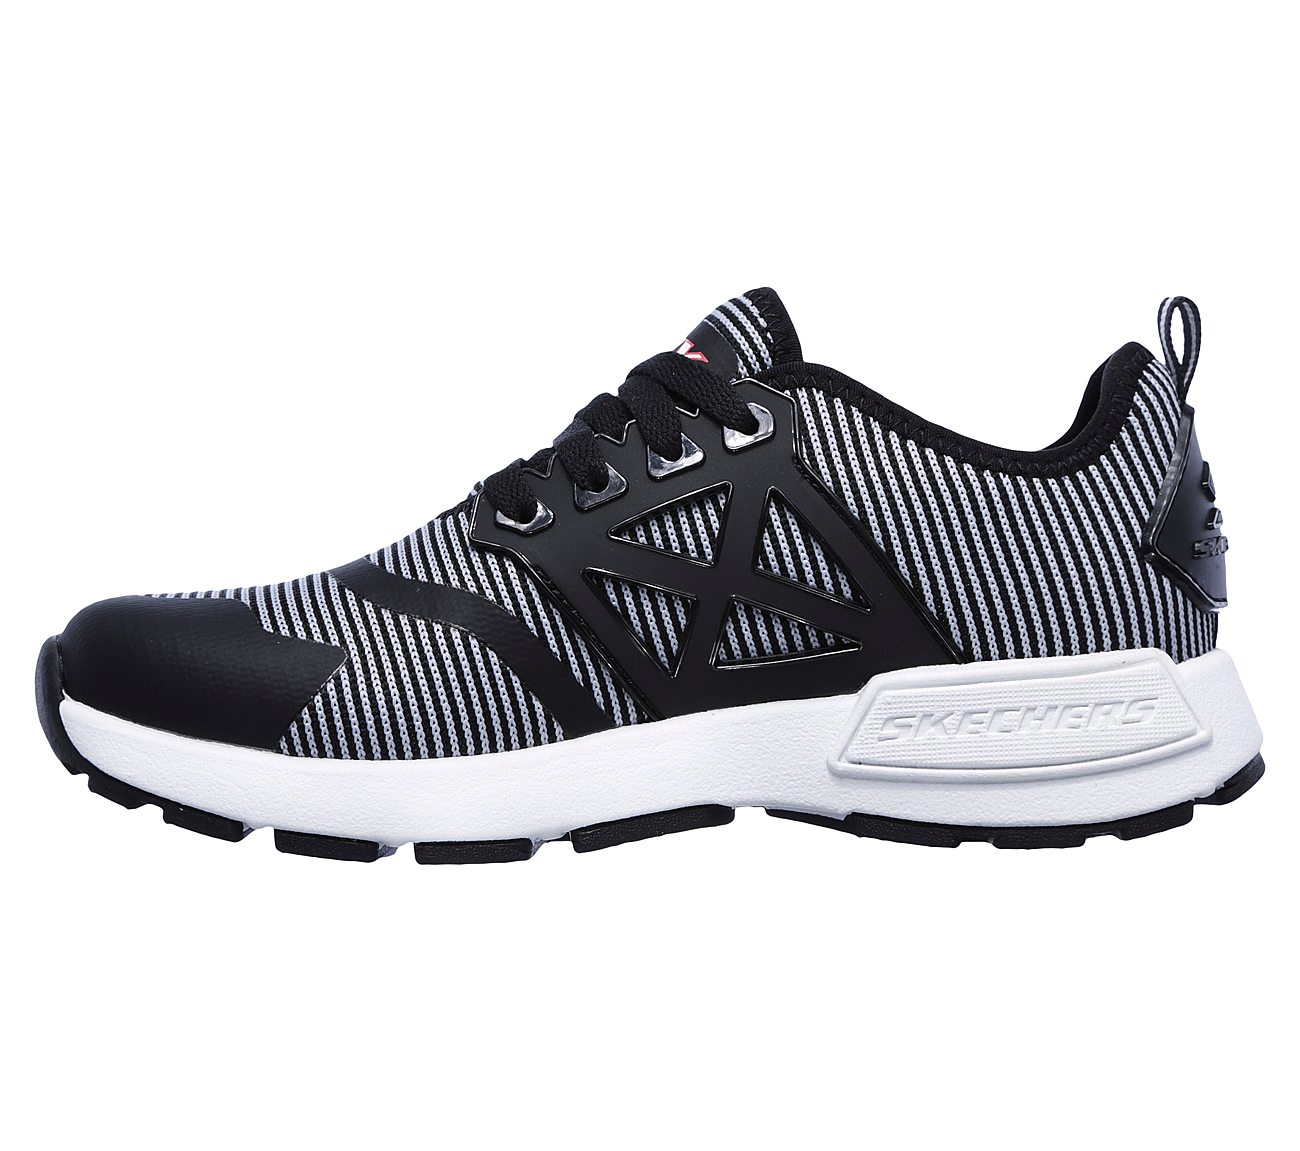 b6b39b424b93 Buy SKECHERS Kinectors - Nanovolt SKECHERS Sport Shoes only £39.00